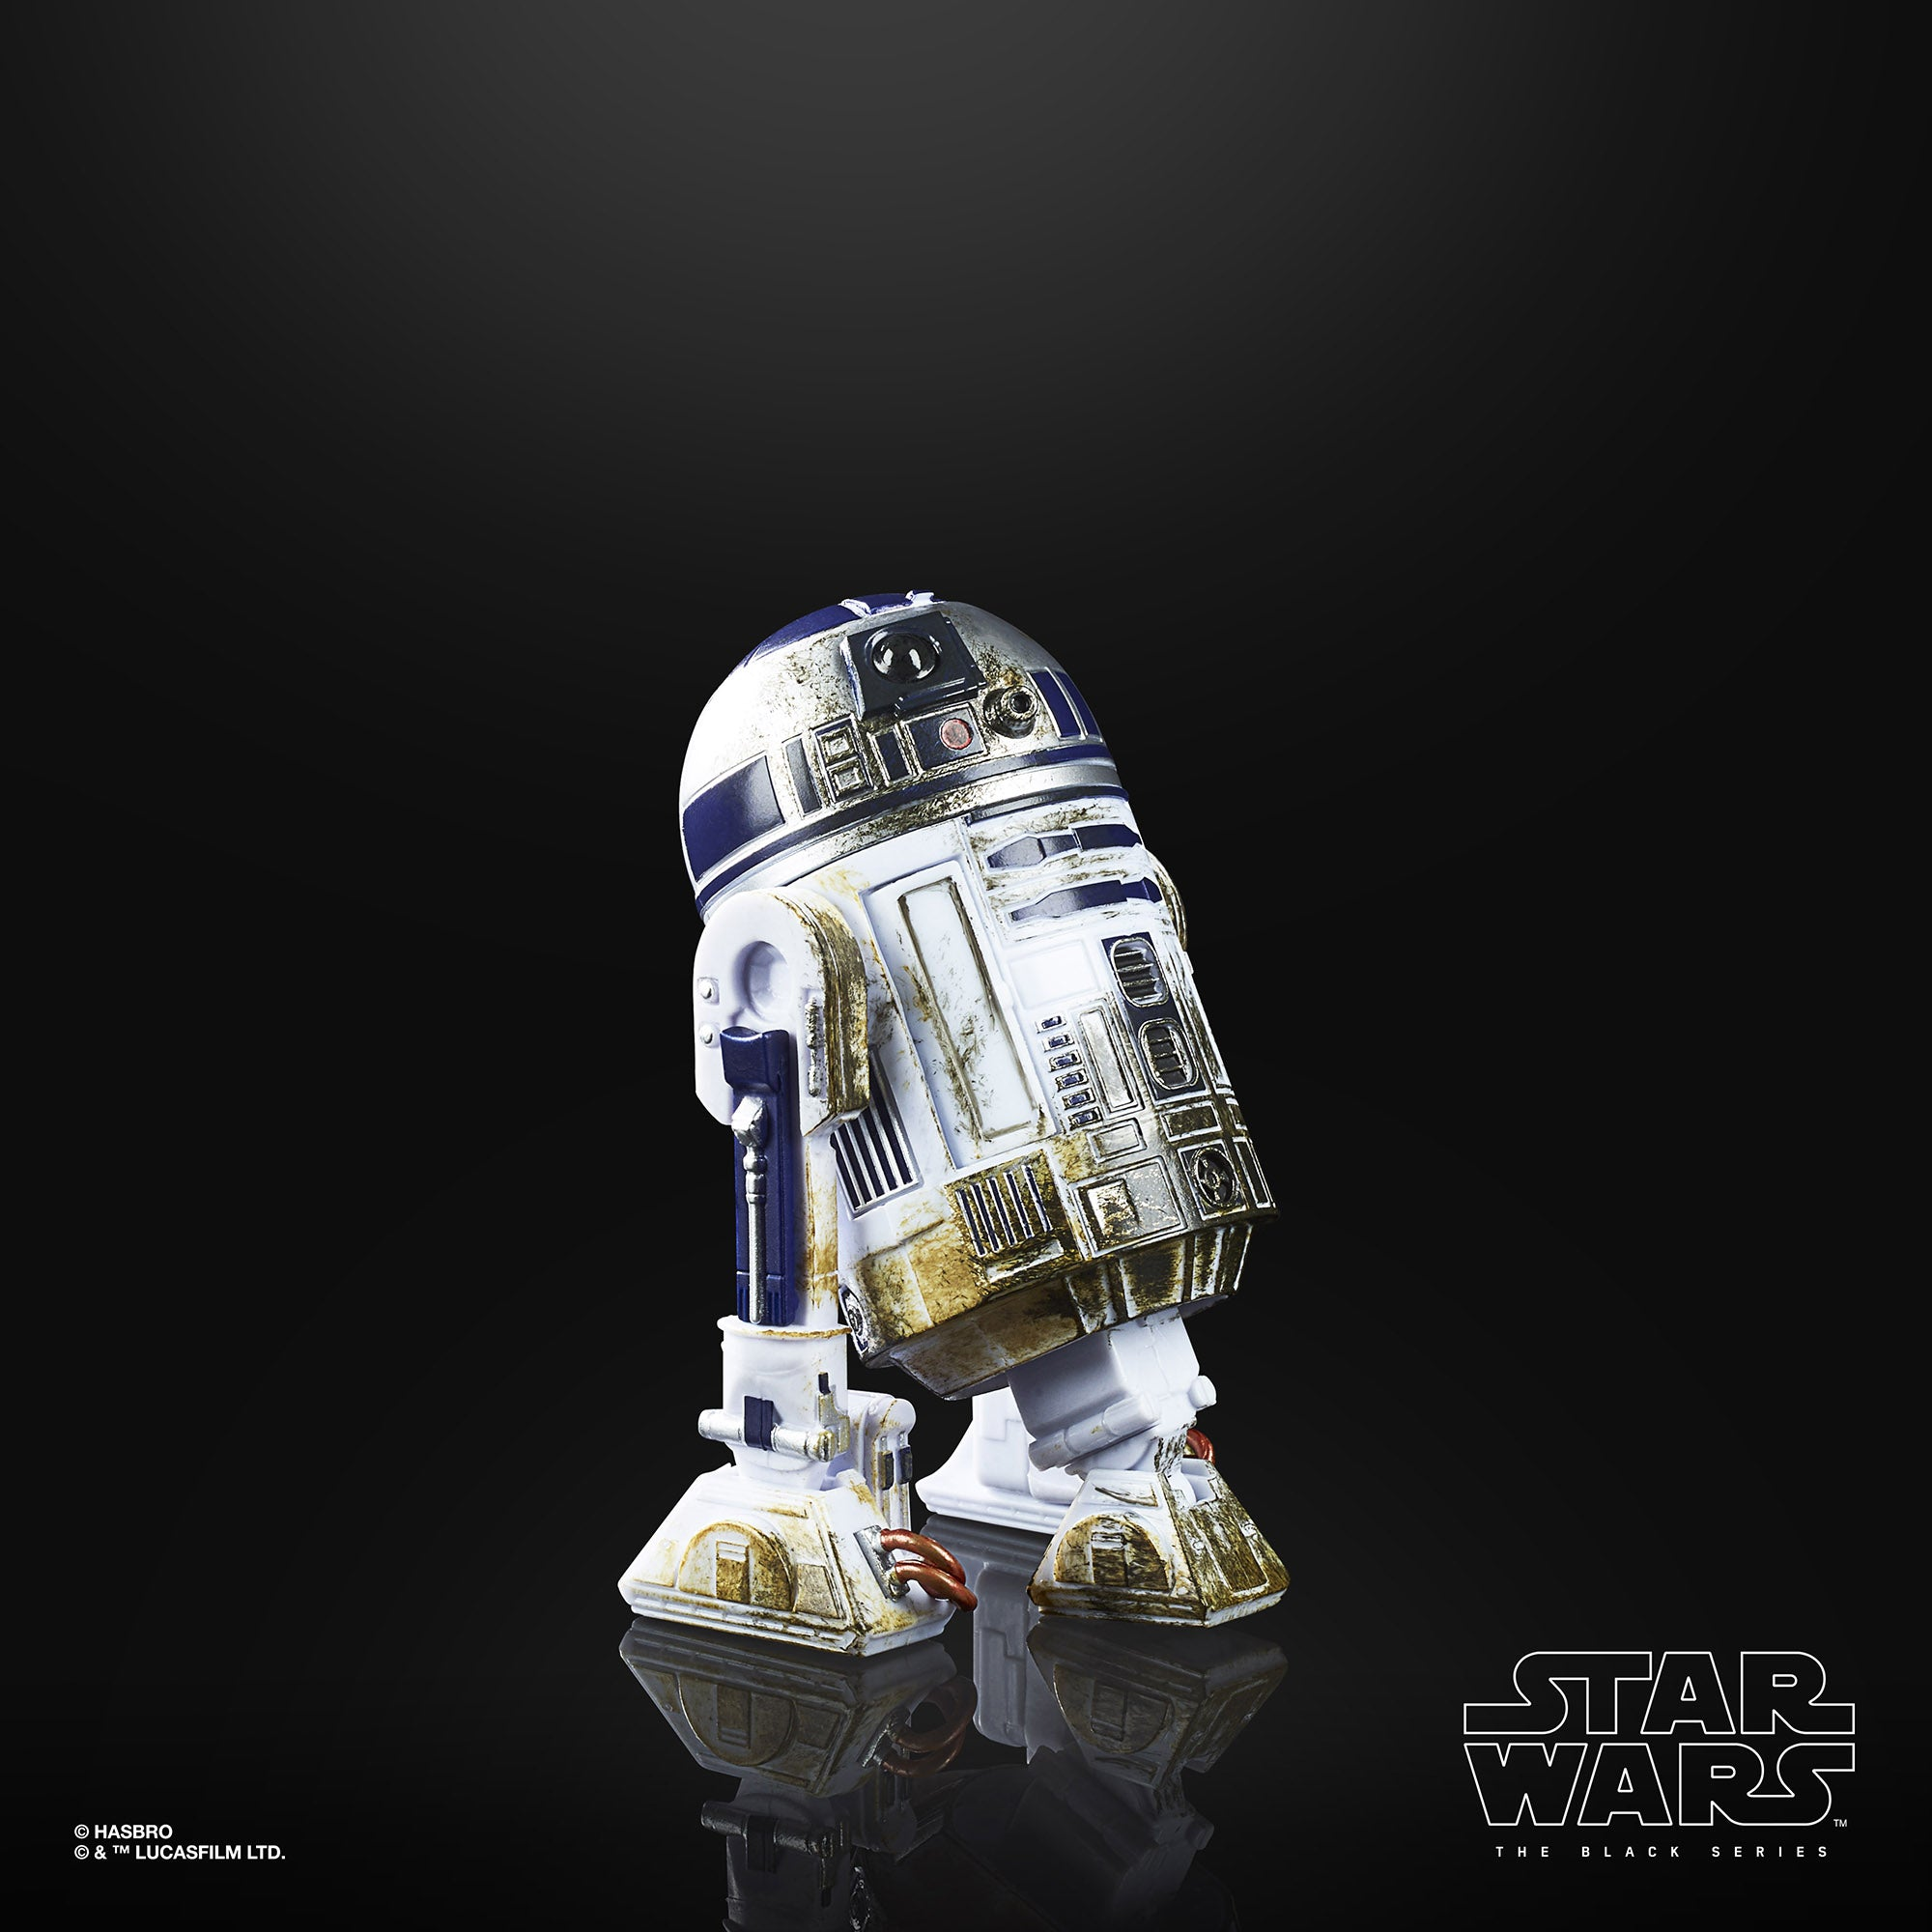 Details about  /2008 Star Wars 30th Anniversary ROTS Artoo-Detoo R2-D2 Action Figure # 30-04